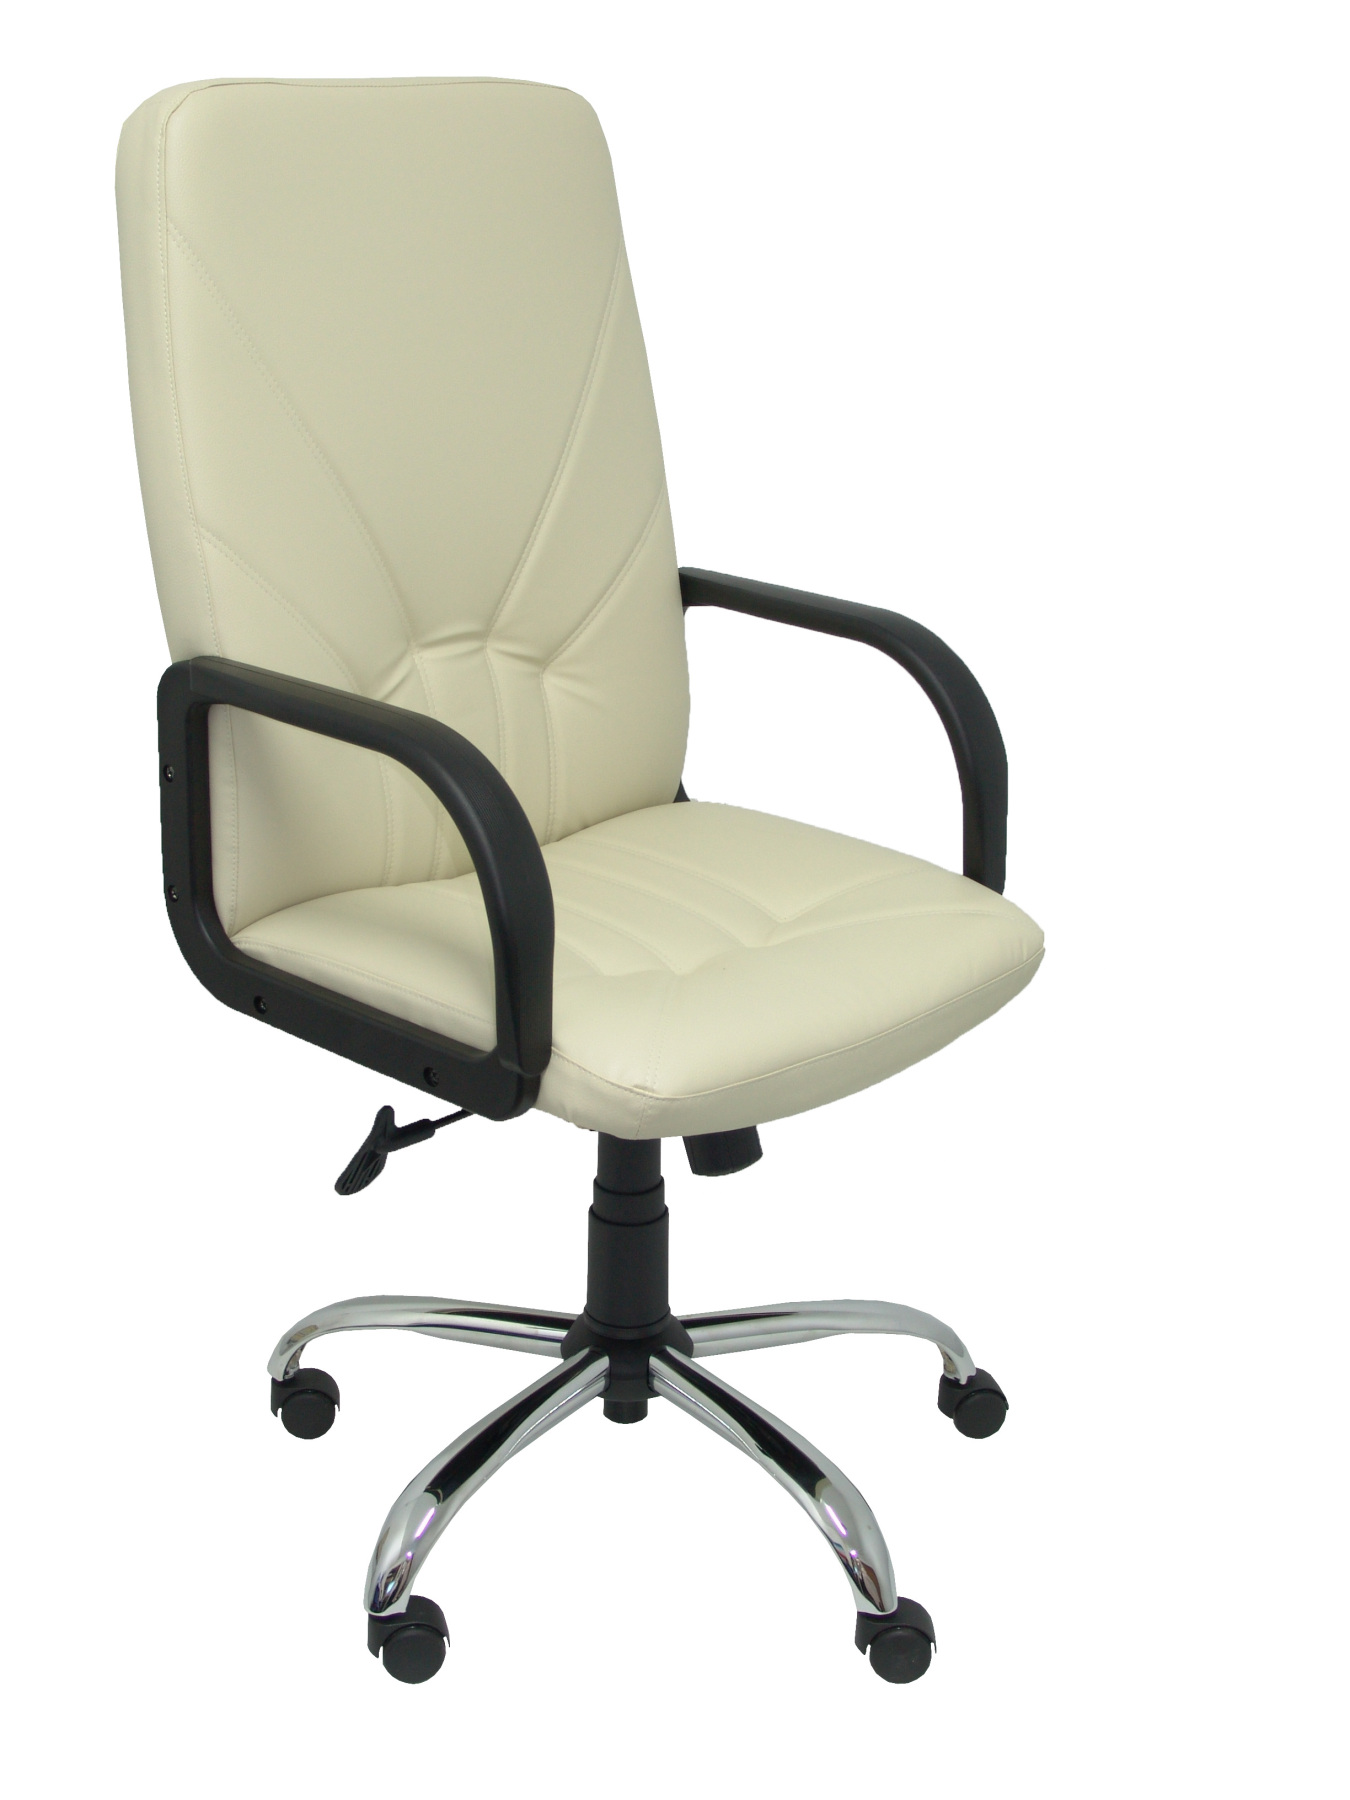 Armchair Ergonomic Steering With Tilting House Mechanism And Dimmable In High Altitude Upholstered In Similpiel PIQU Cream Color